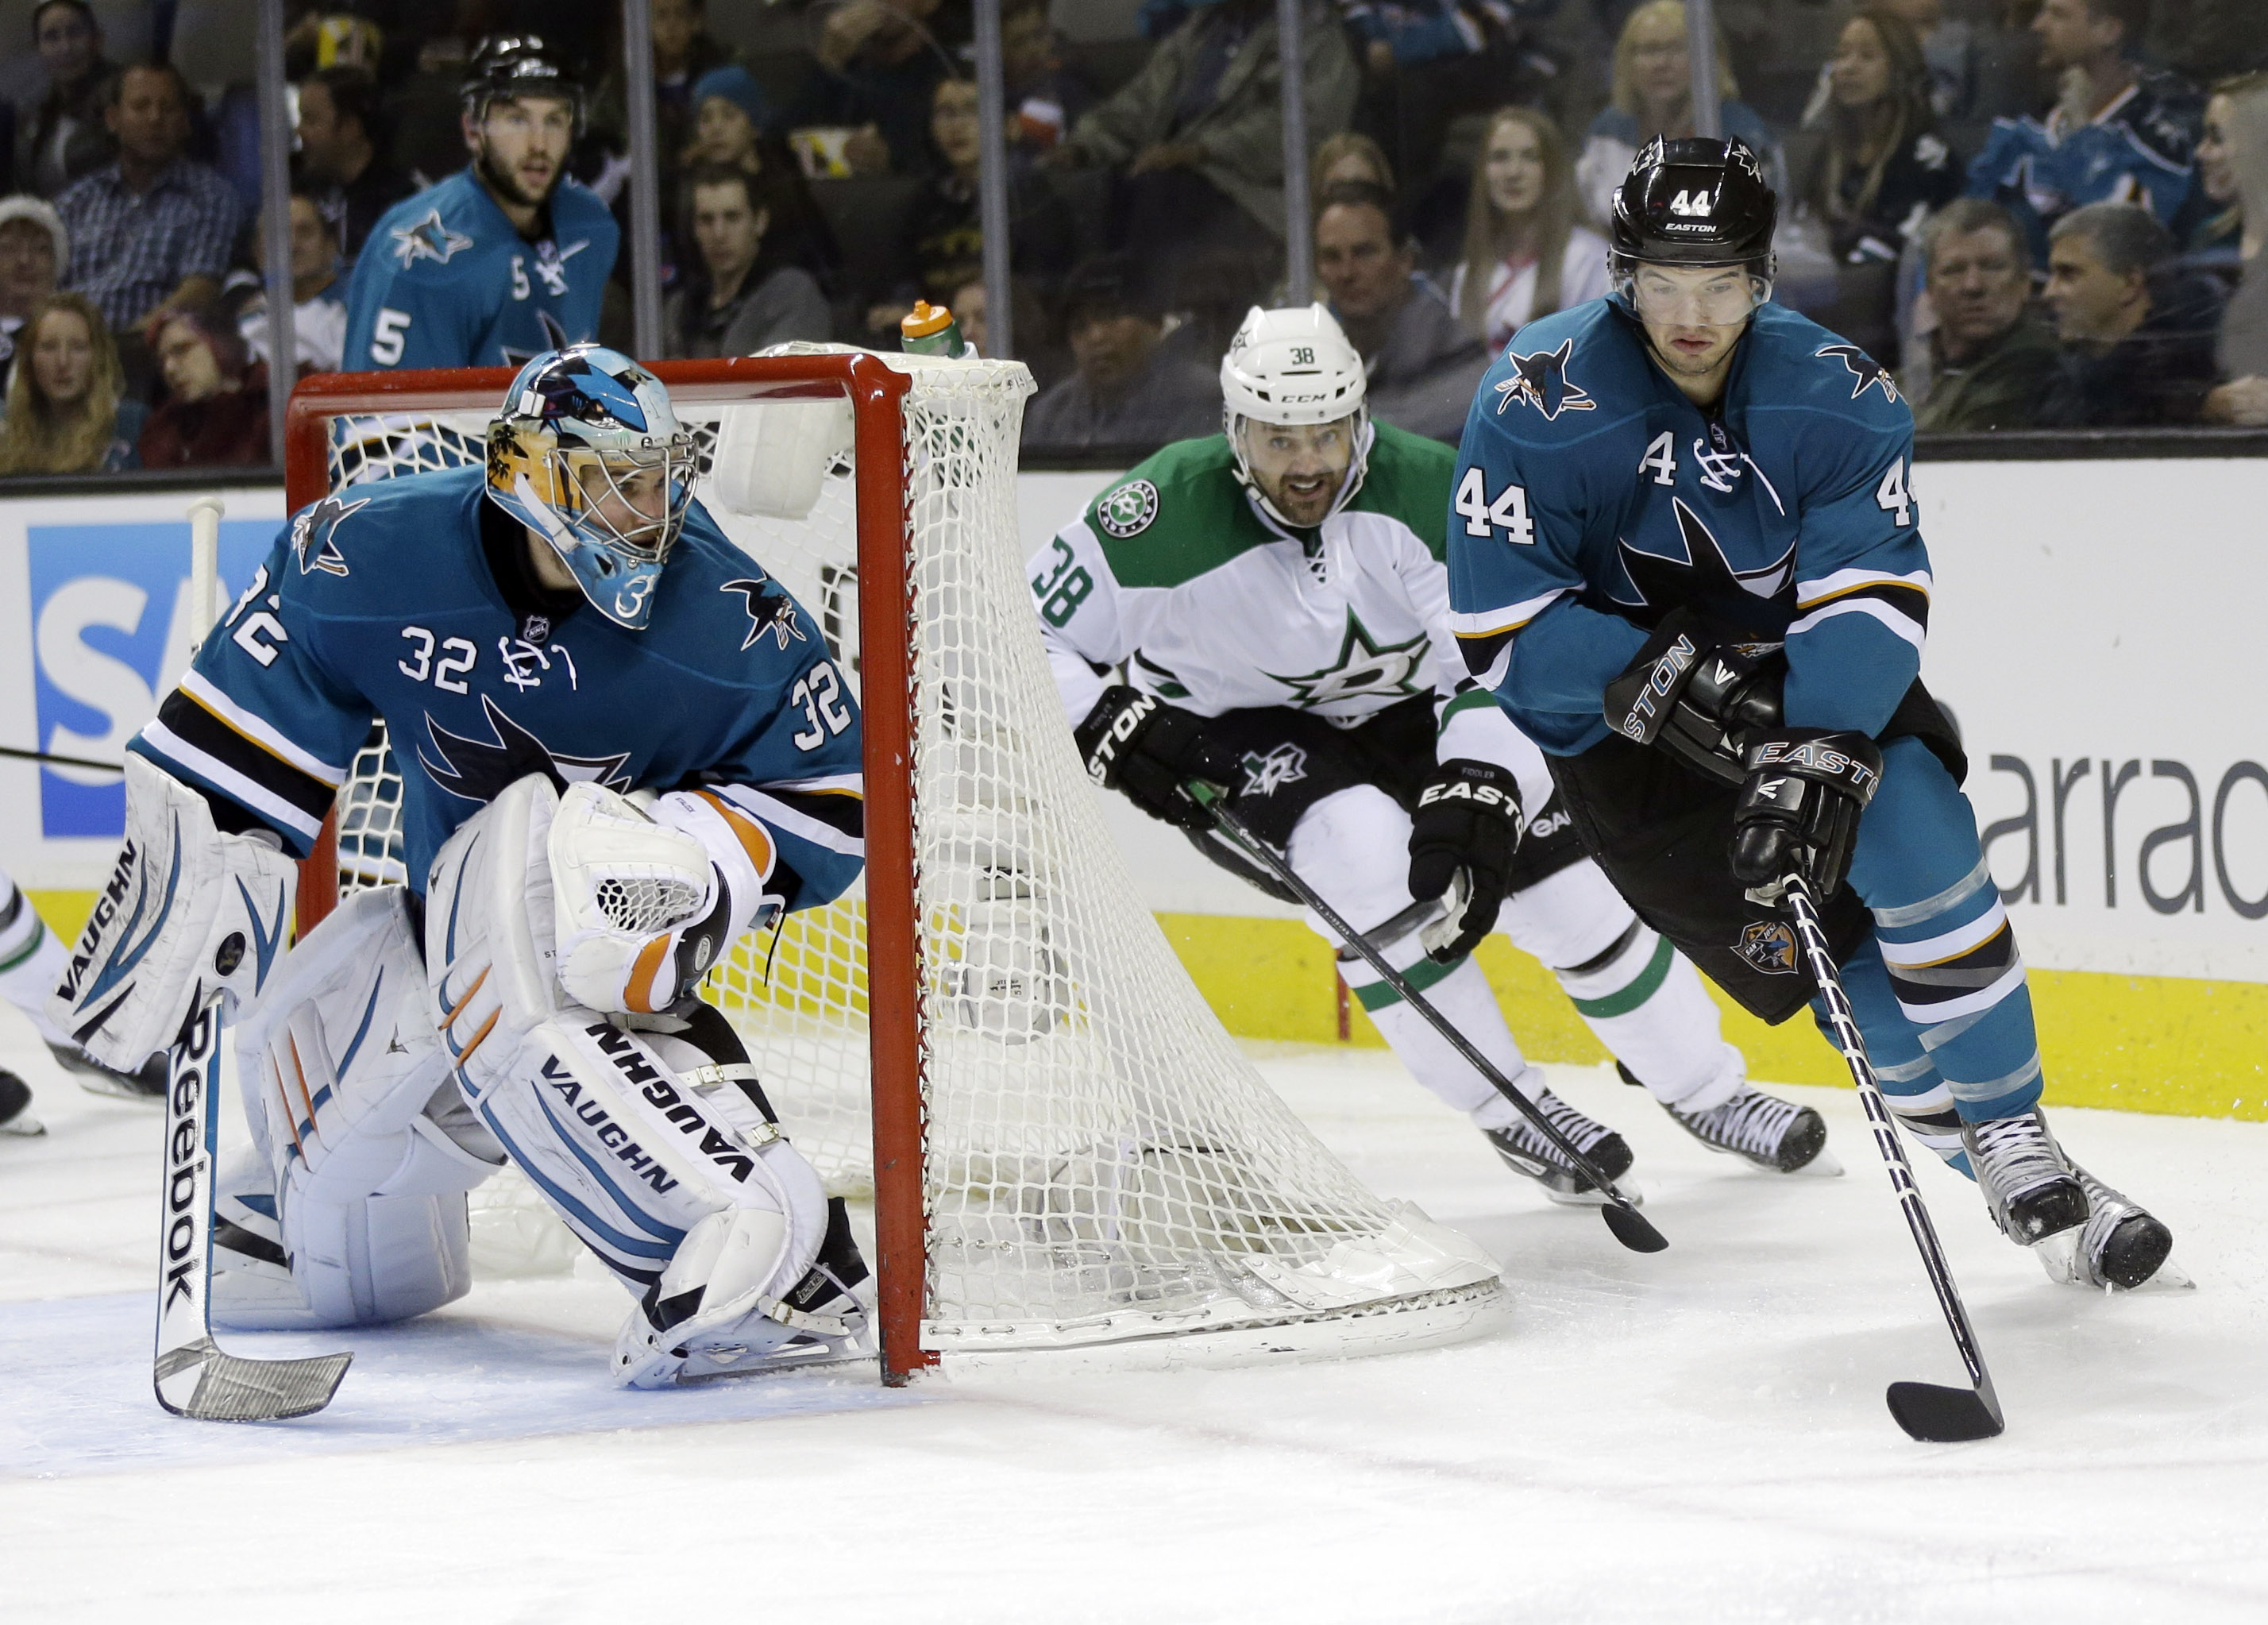 San Jose Sharks' Marc-Edouard Vlasic (44) is chased by Dallas Stars' Vernon Fiddler (38) during the second period of an NHL hockey game on Saturday, Dec. 21, 2013, in San Jose, Calif